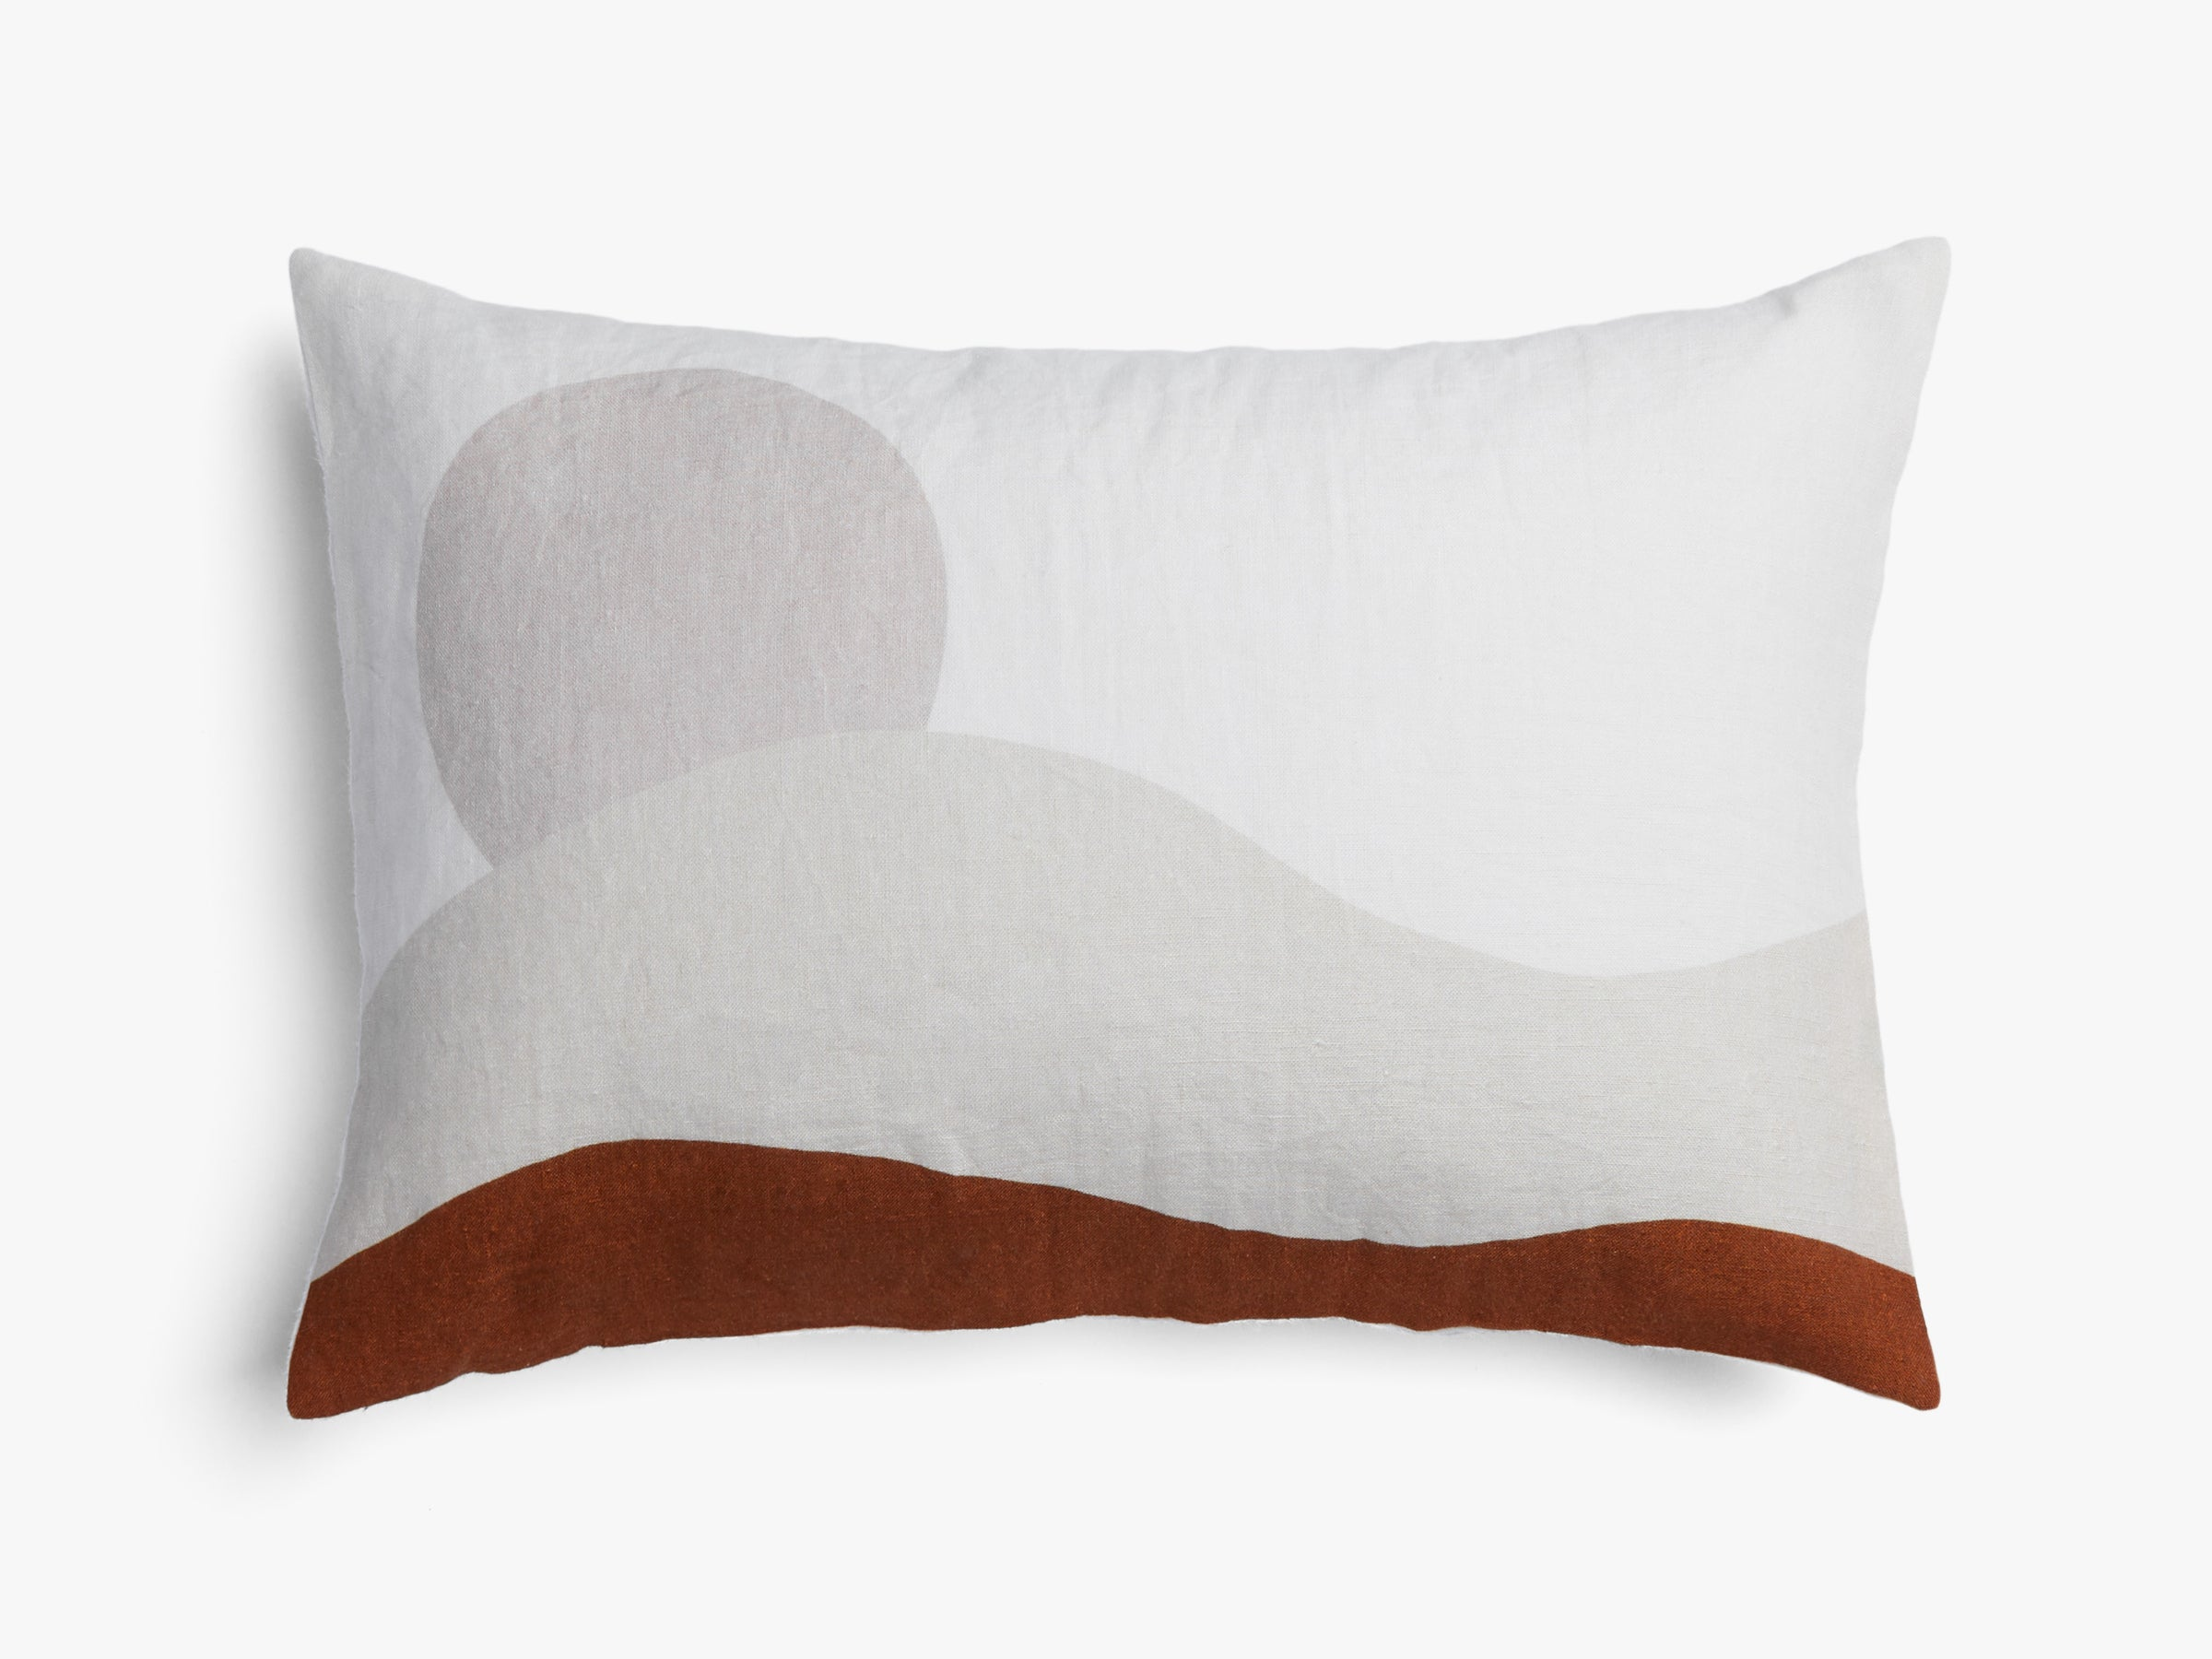 Toddler Sun Pillow Cover Product Image